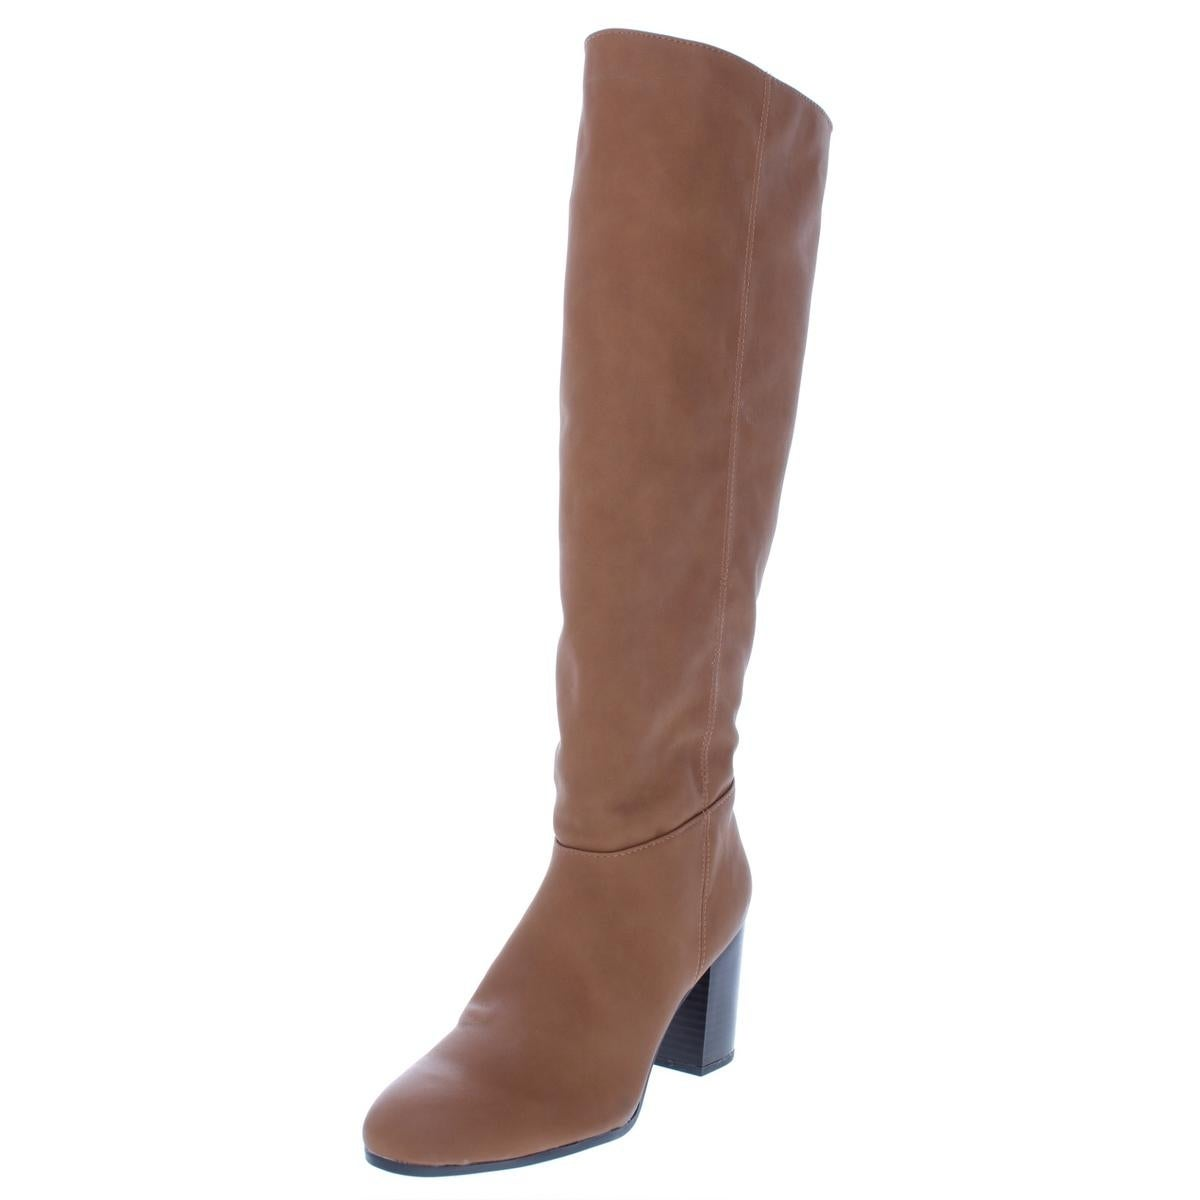 f7d6fa4dc2b1a Shop Circus by Sam Edelman Womens Sibley Riding Boots Padded Insole Over -The-Knee - Free Shipping Today - Overstock.com - 24186564